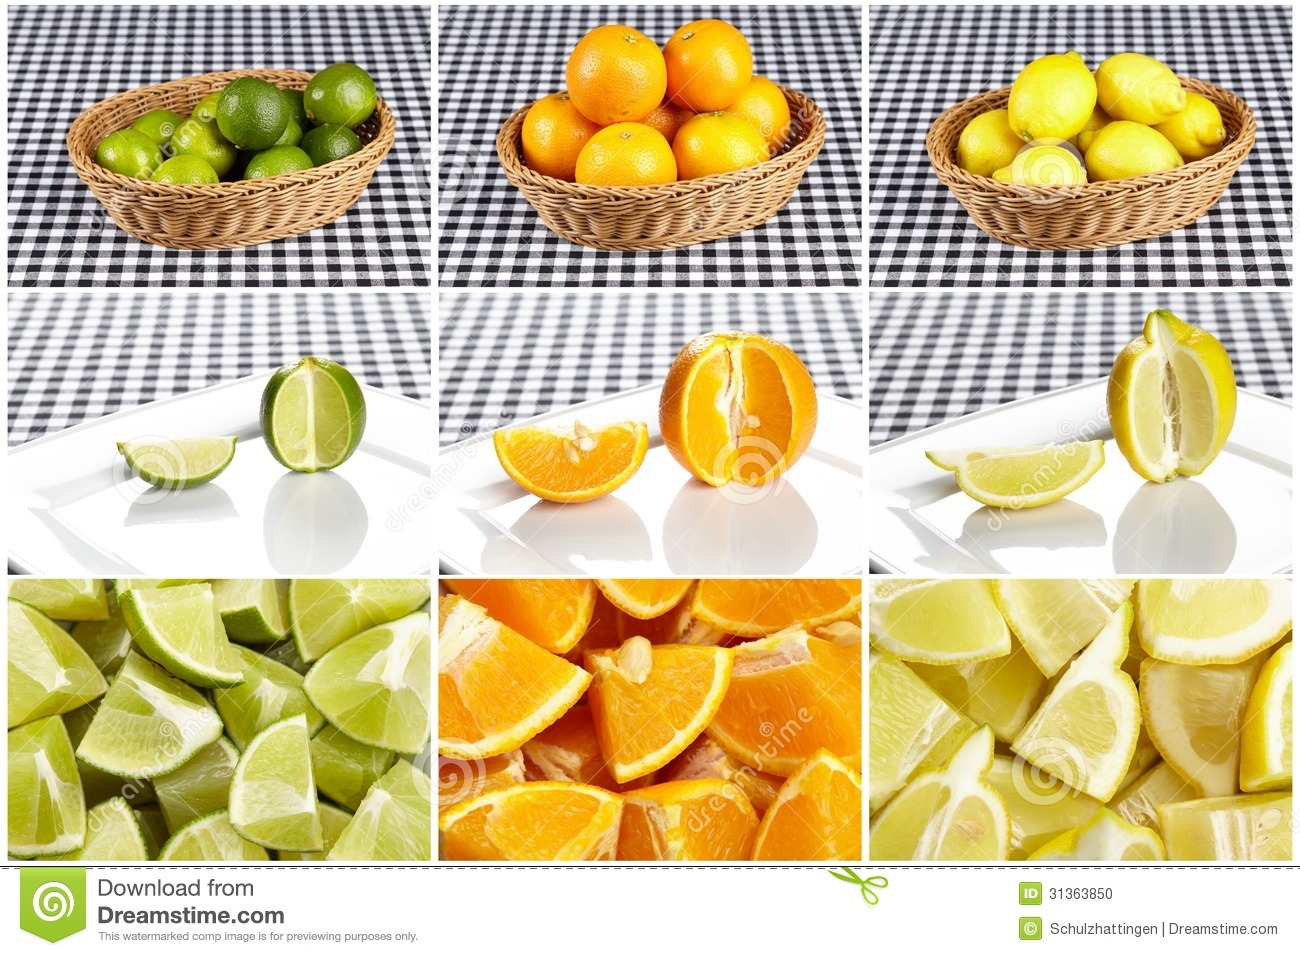 Basket Of Citrus Fruits And Prepared Fruits  The Collage Is Showong